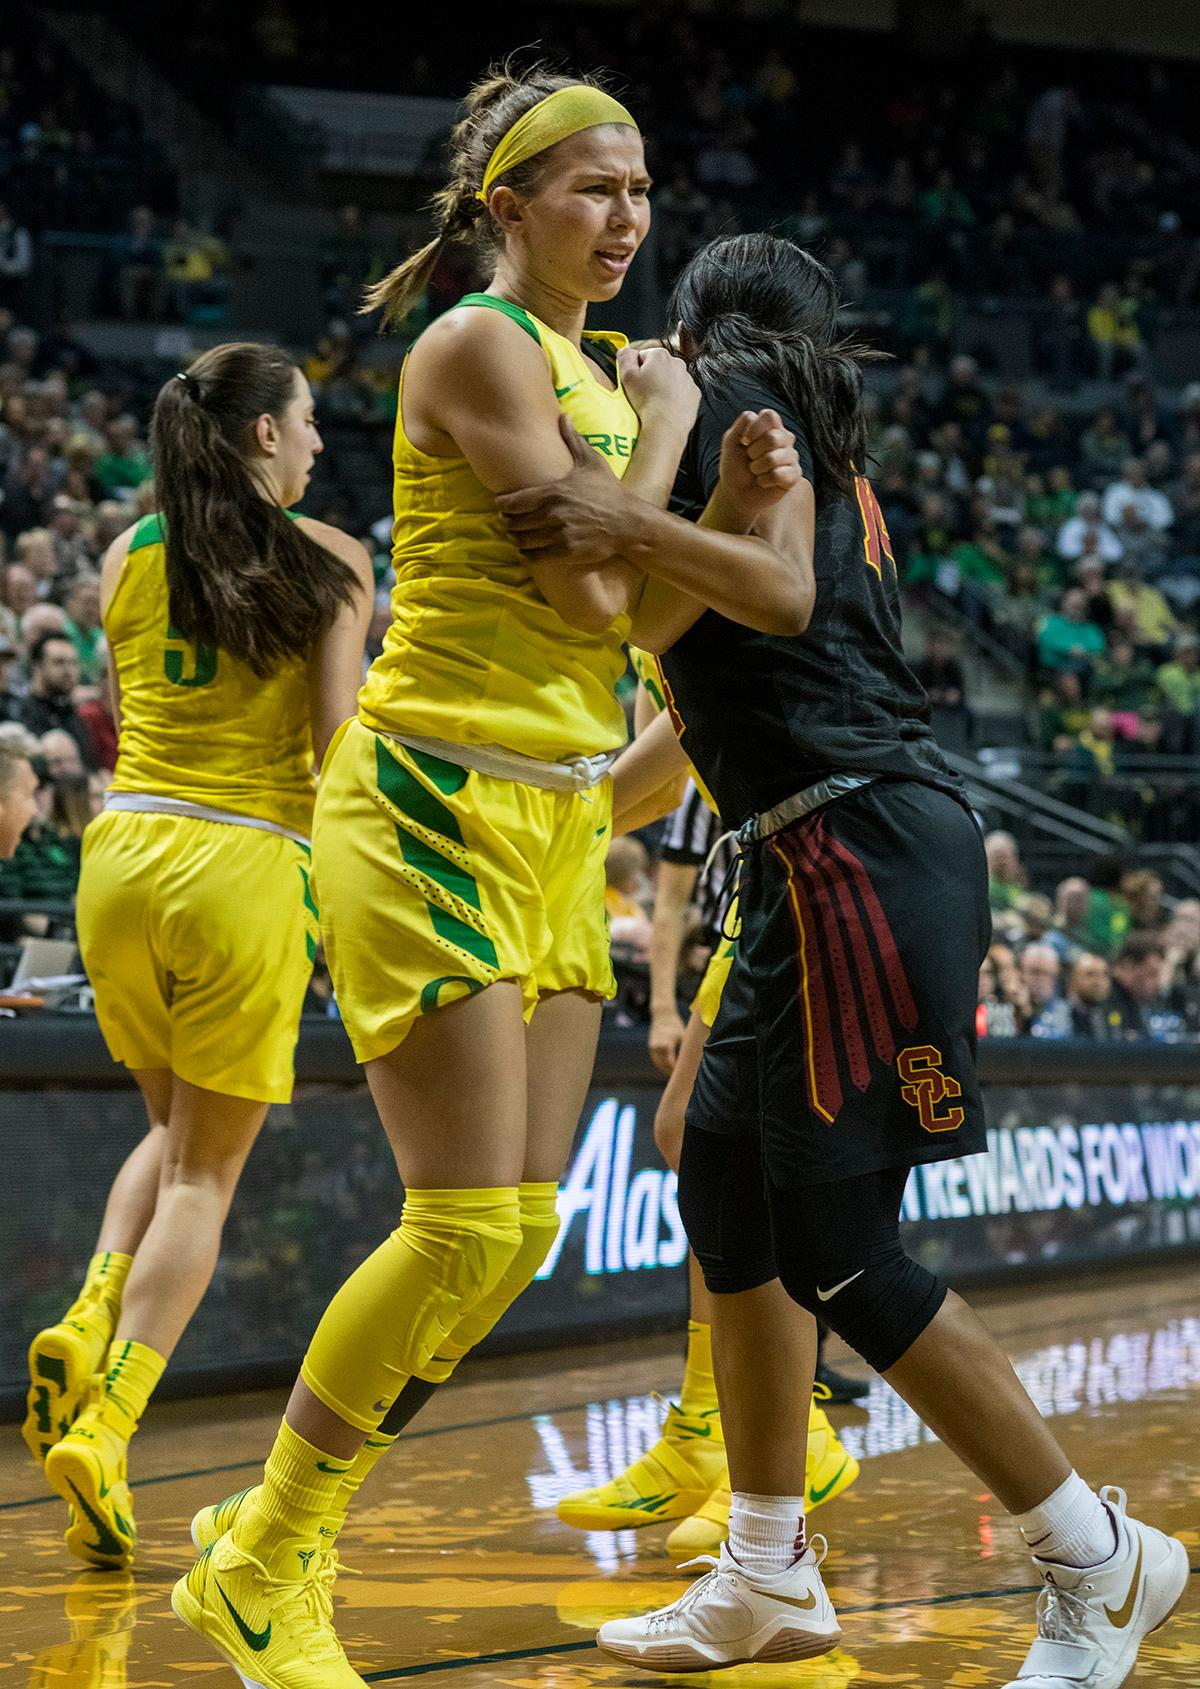 Oregon Ducks Lexi Bando (#10) sets the screen. The Oregon Ducks defeated the USC Trojans 80-74 on Friday at Matthew Knight Arena in a game that went into double overtime. Lexi Bando sealed the Ducks' victory by scoring a three-pointer in the closing of the game. Ruthy Hebard set a new NCAA record of 30 consecutive field goals in three straight games, the old record being 28. Ruthy Hebard got a double-double with 27 points and 10 rebounds, Mallory McGwire also had 10 rebounds. The Ducks had four players in double digits. The Ducks are now 24-4, 13-2 in the Pac-12, and are tied for first with Stanford. Photo By Rhianna Gelhart, Oregon News Lab